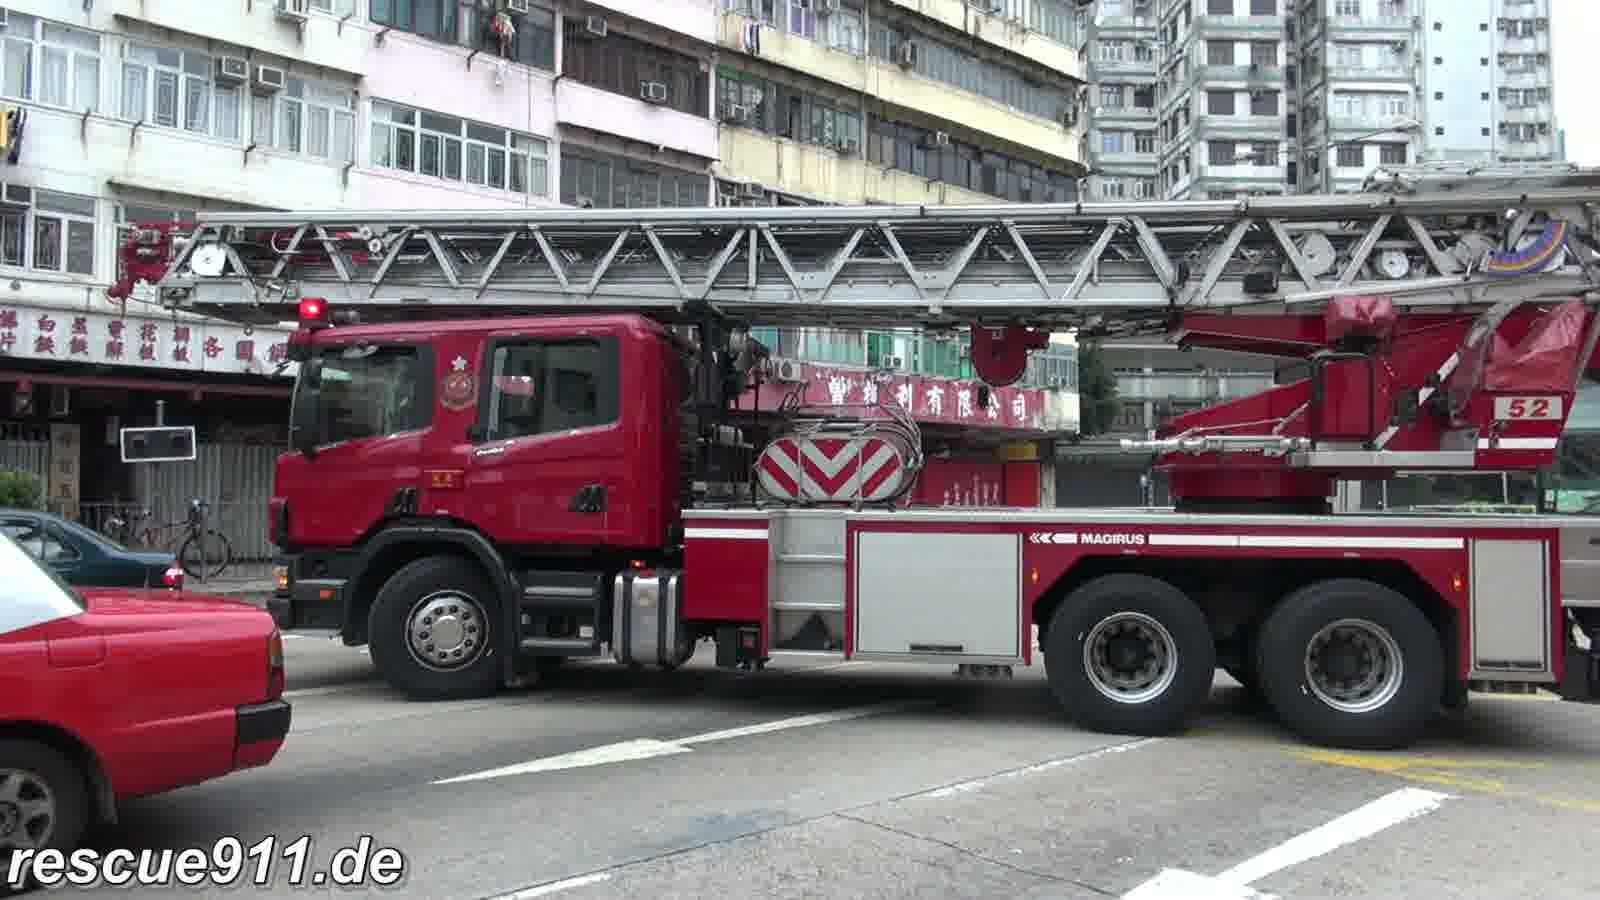 Turntable Ladder HKFSD Mong Kok Fire Station (stream)